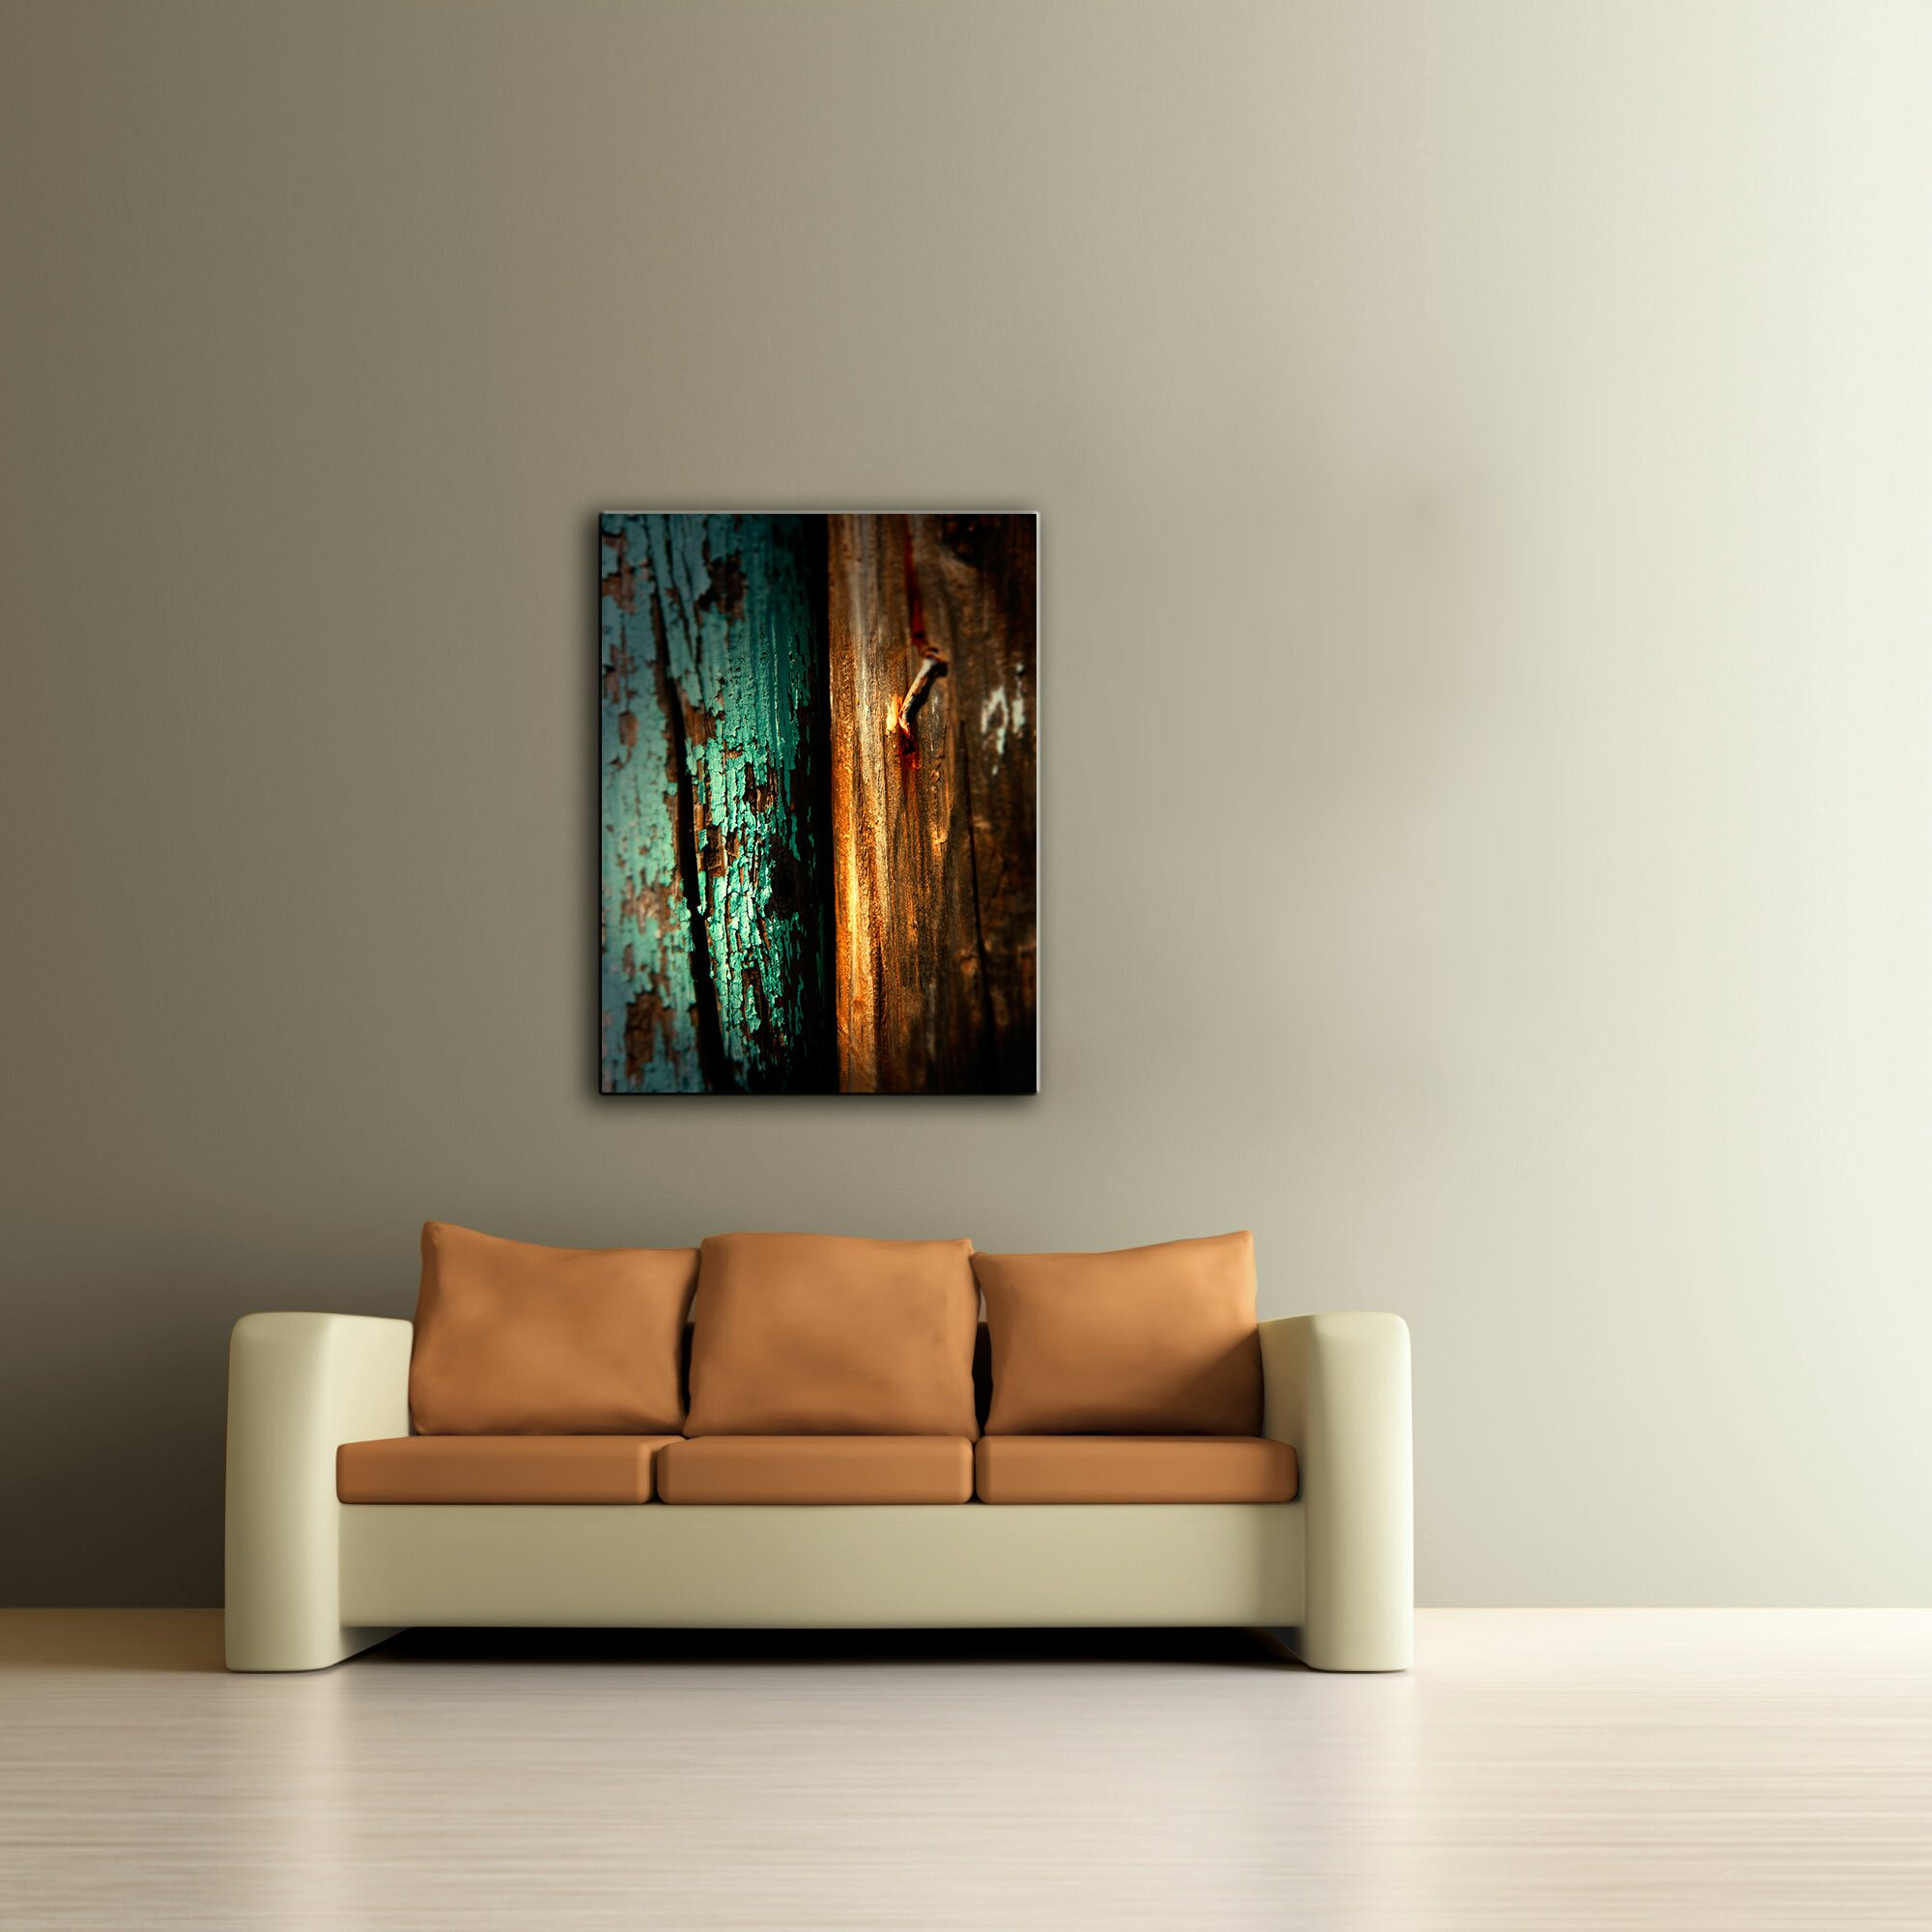 Wall Decor Ross : Quot wood nail by mark ross piece photographic print on